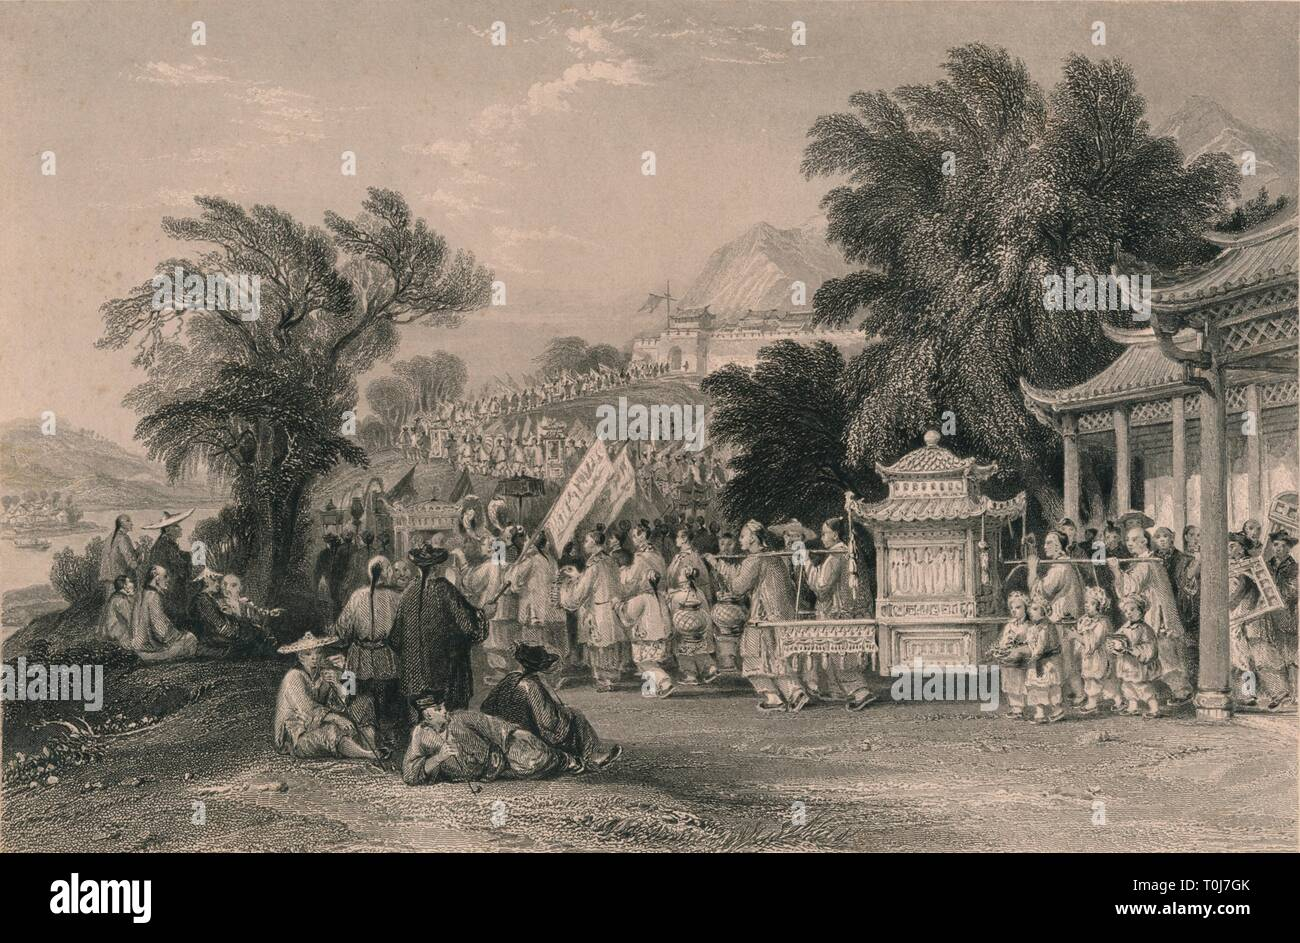 'Marriage Procession at the Blue-cloud Creek, Chin-keang-foo', c1843-1858. Chinese wedding procession with the bride being carried in a palanquin. [Fisher, Son & Co., London & Paris] - Stock Image